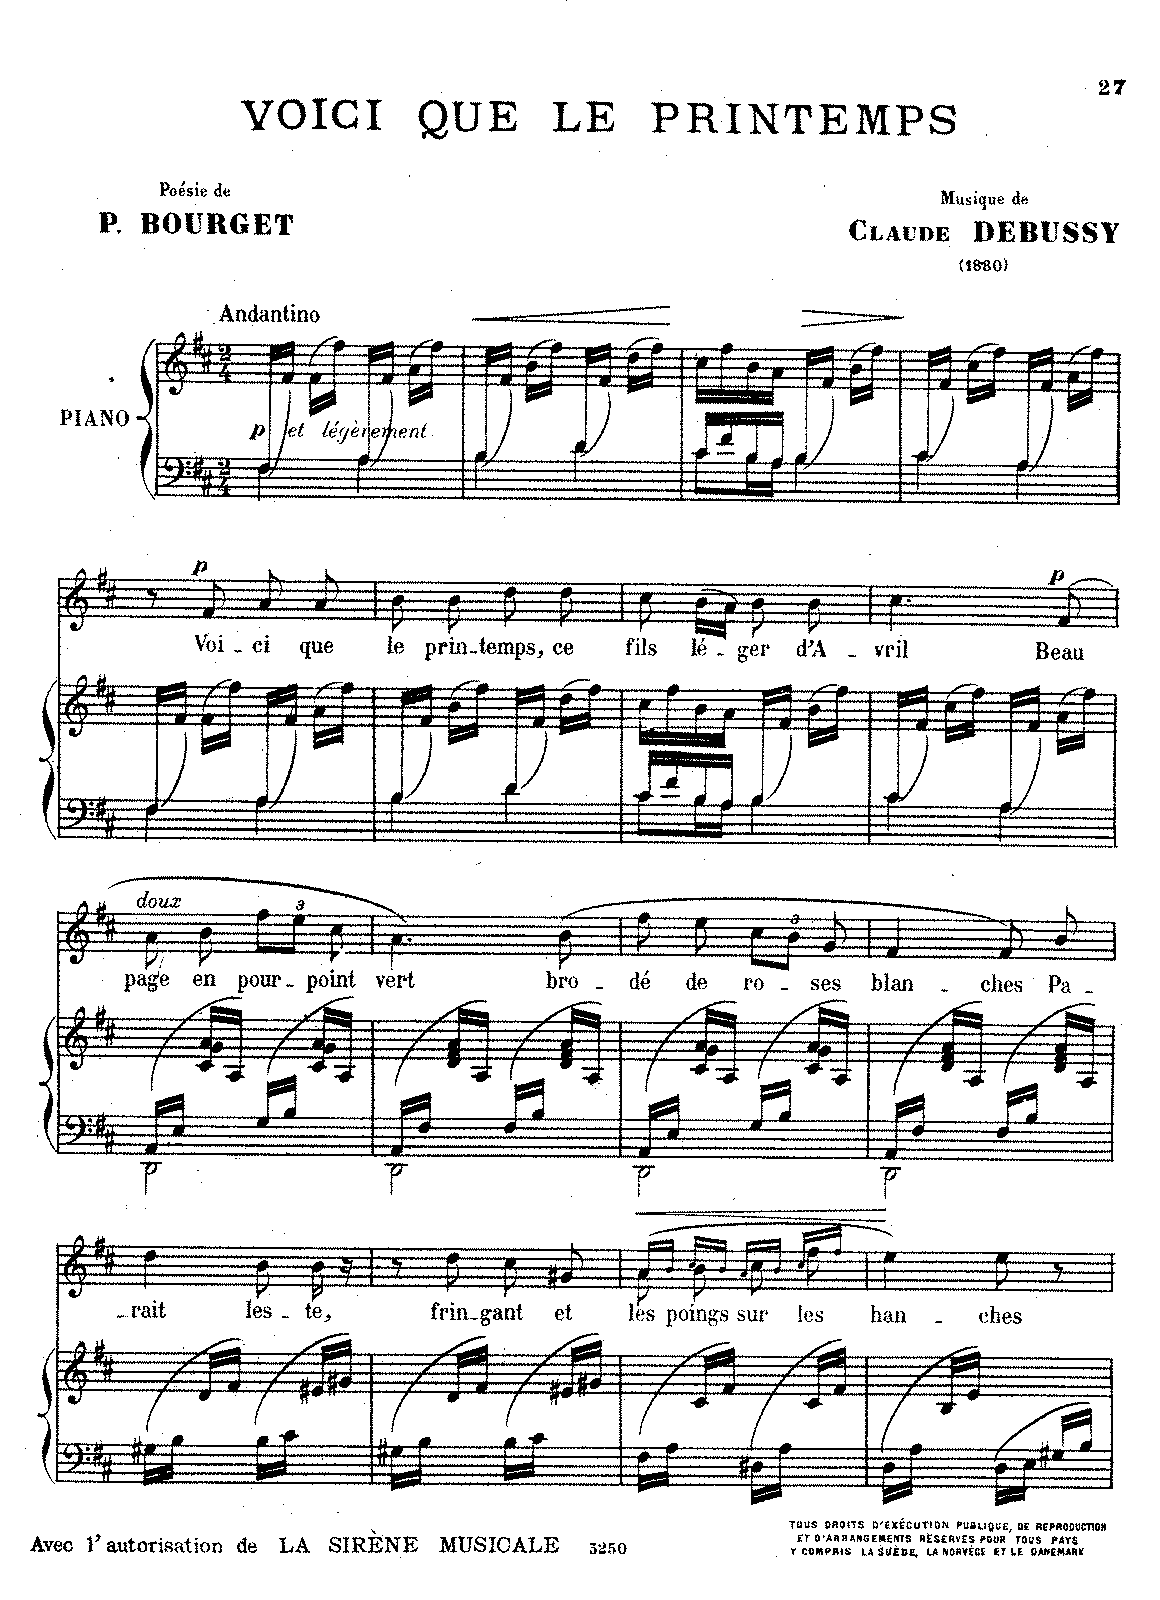 Debussy - Voici que le Printemps (voice and piano).pdf